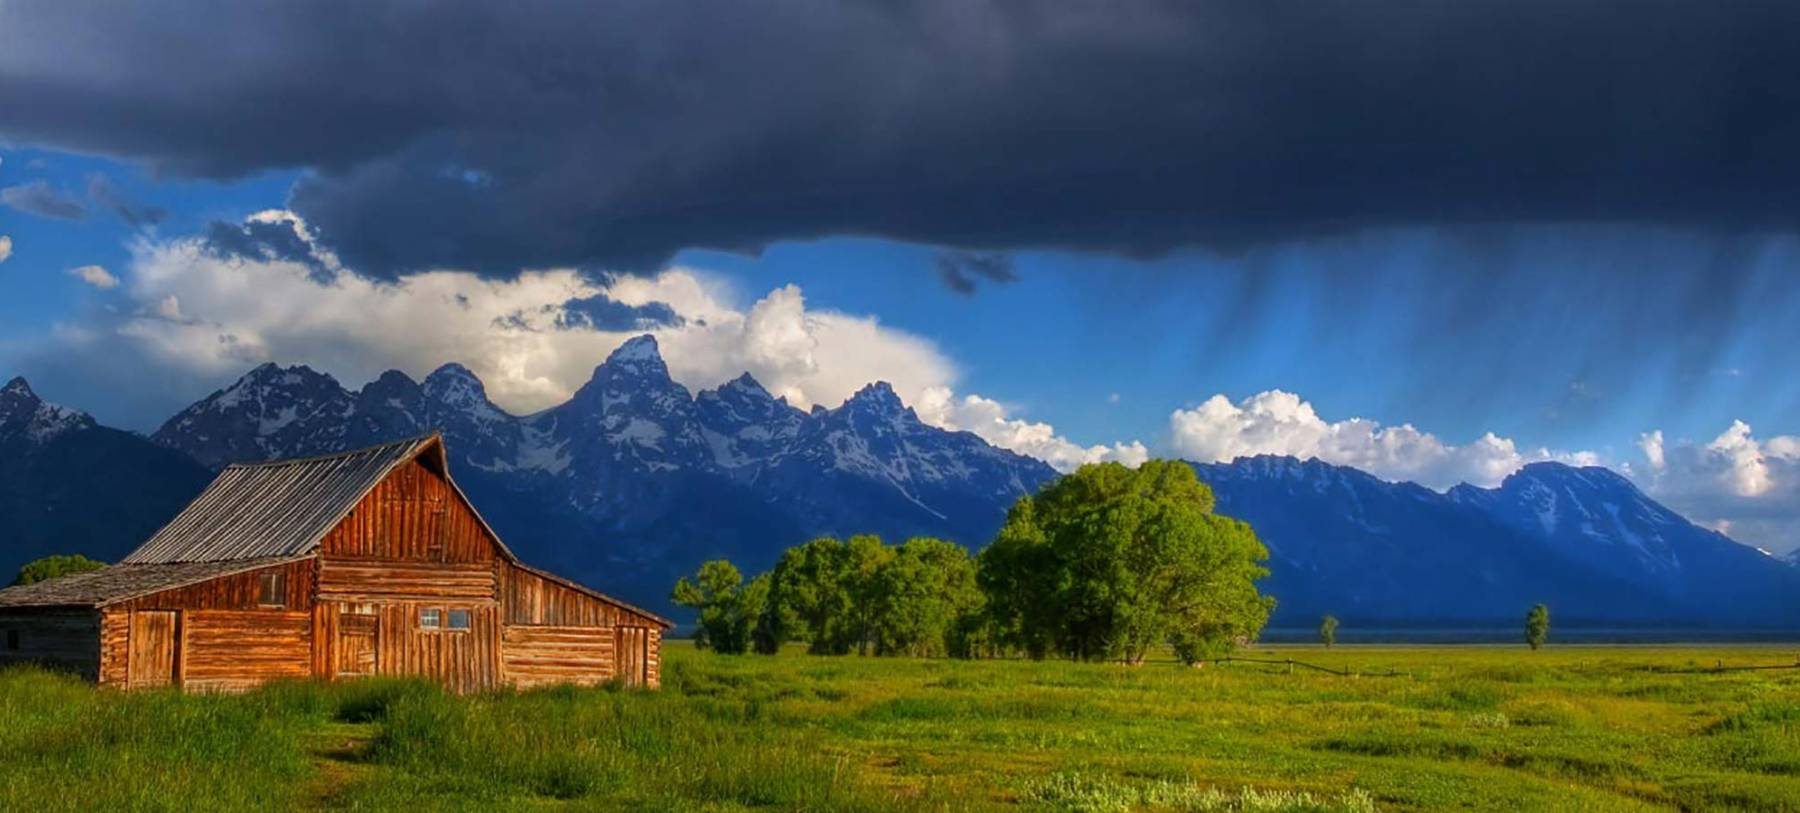 stormy sky over moulton barn jackson hole